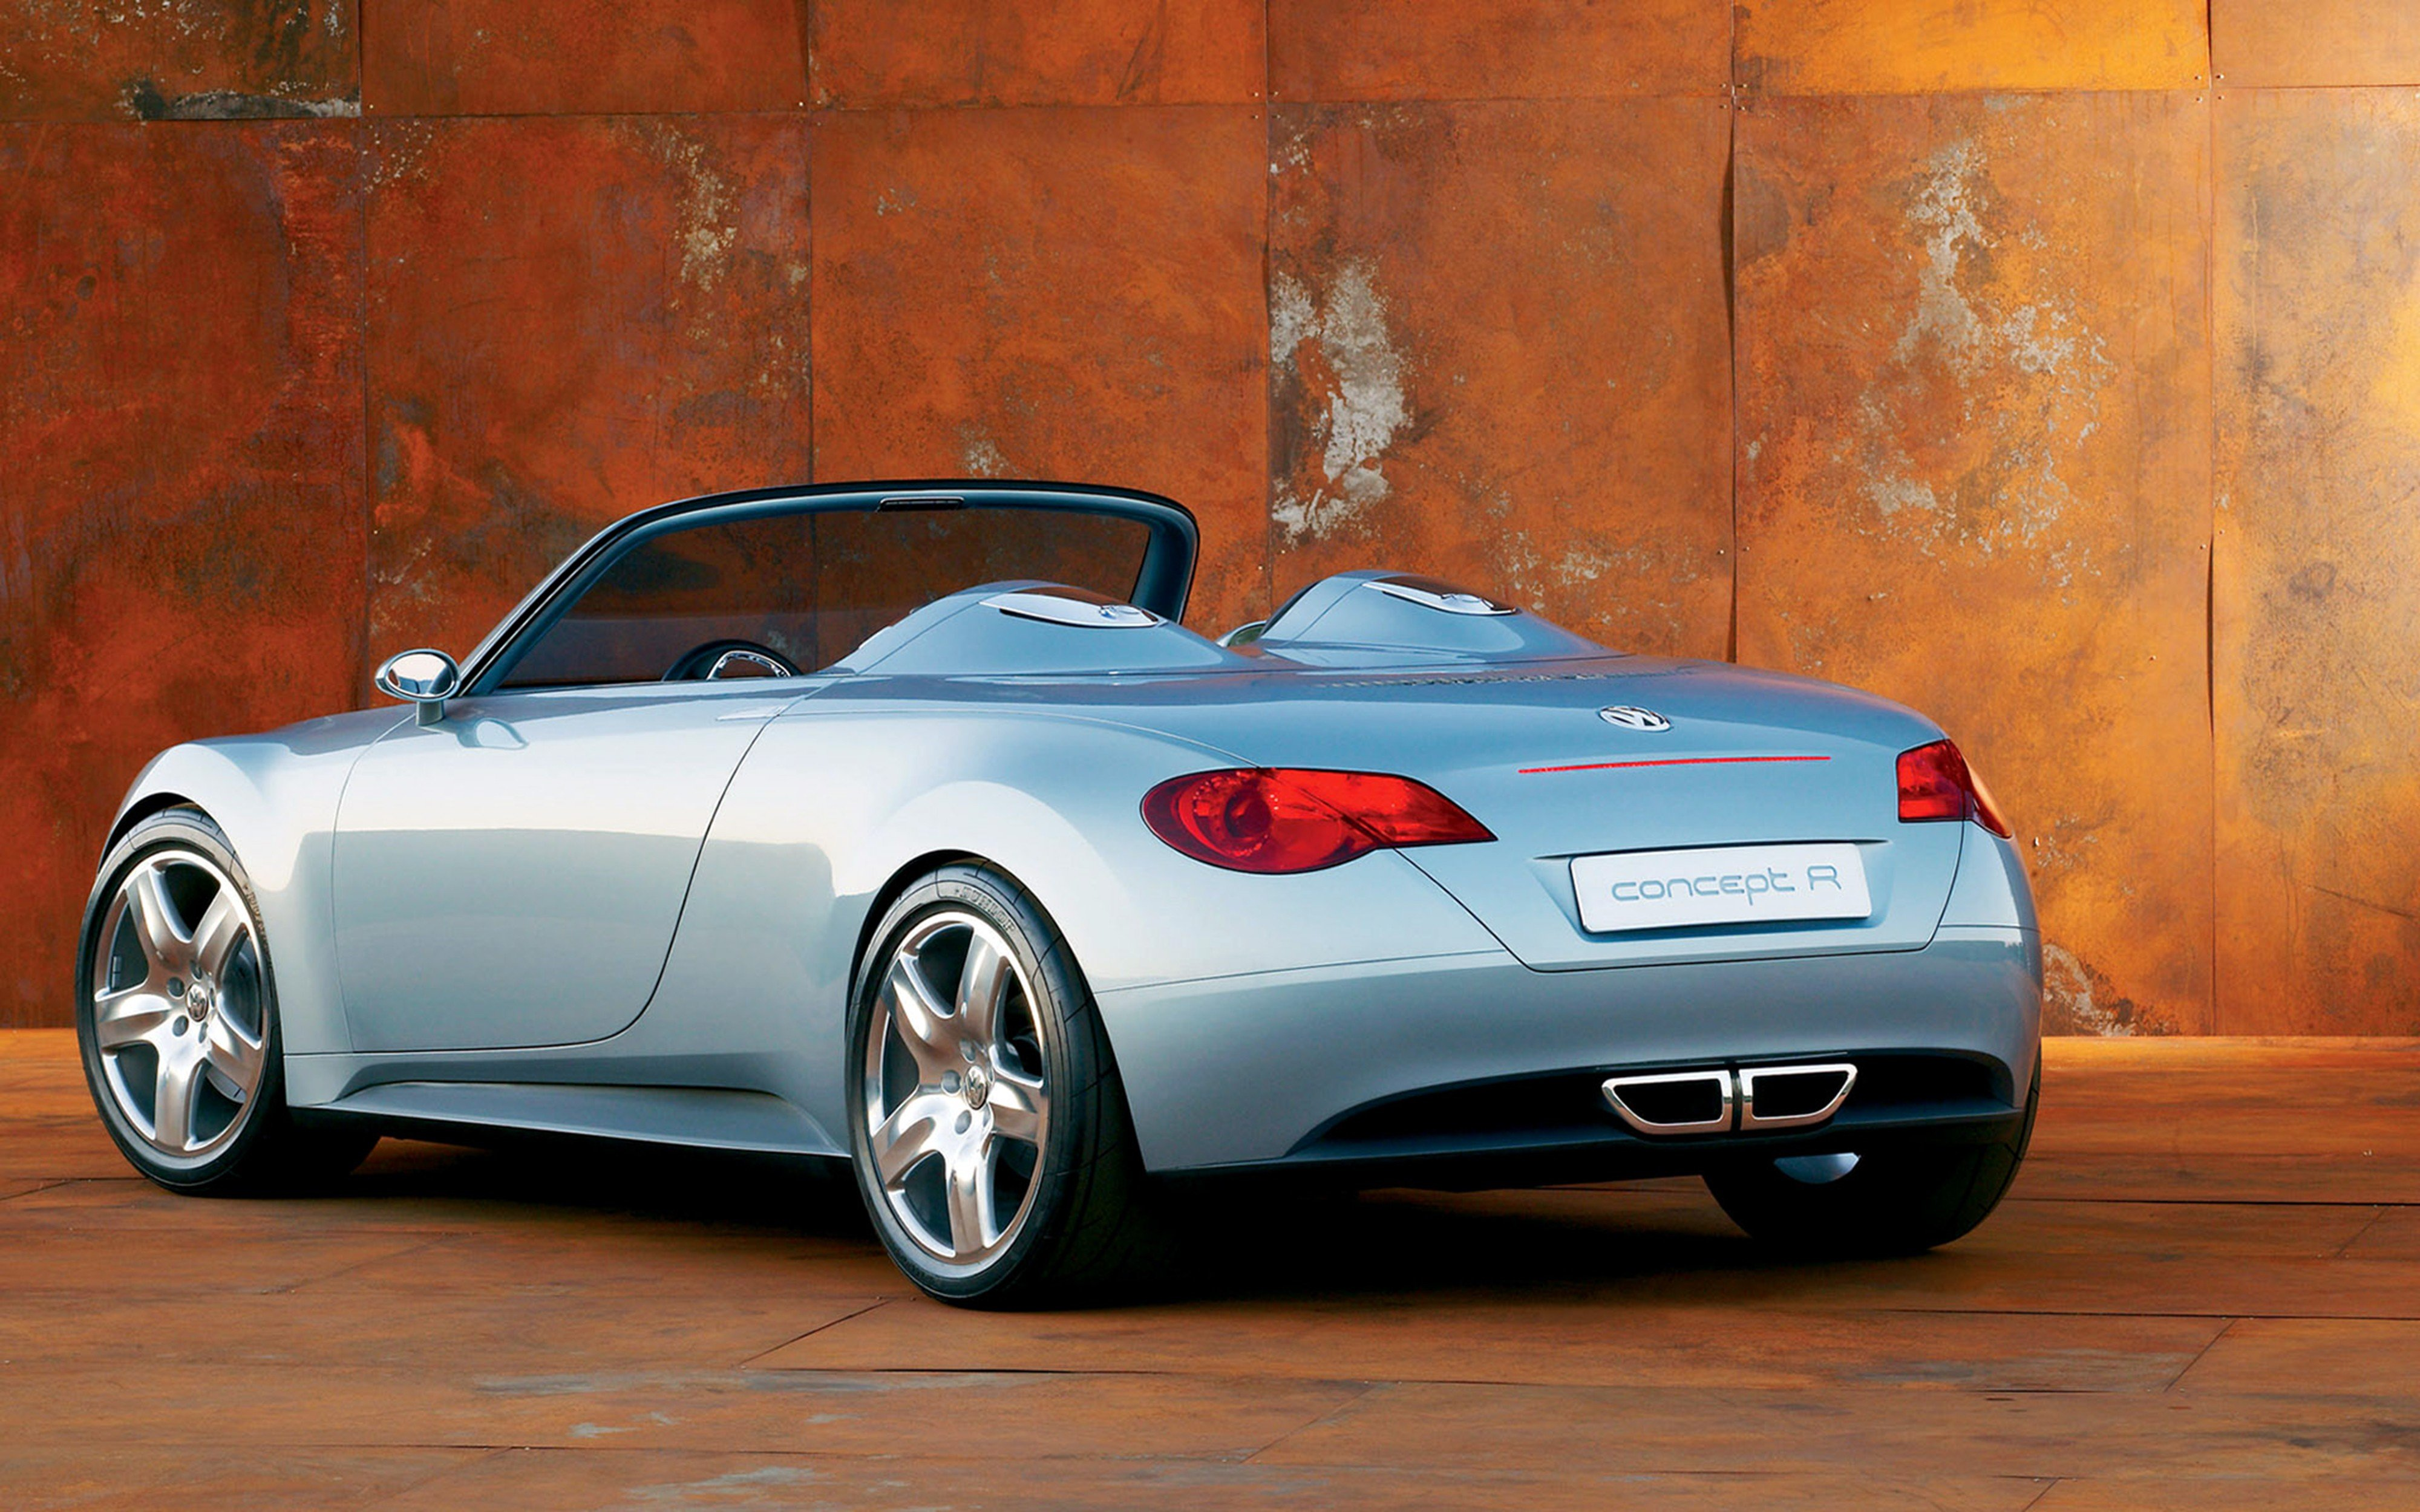 2003 Volkswagen Concept R Car Convertible Sport Germany 4000x2500